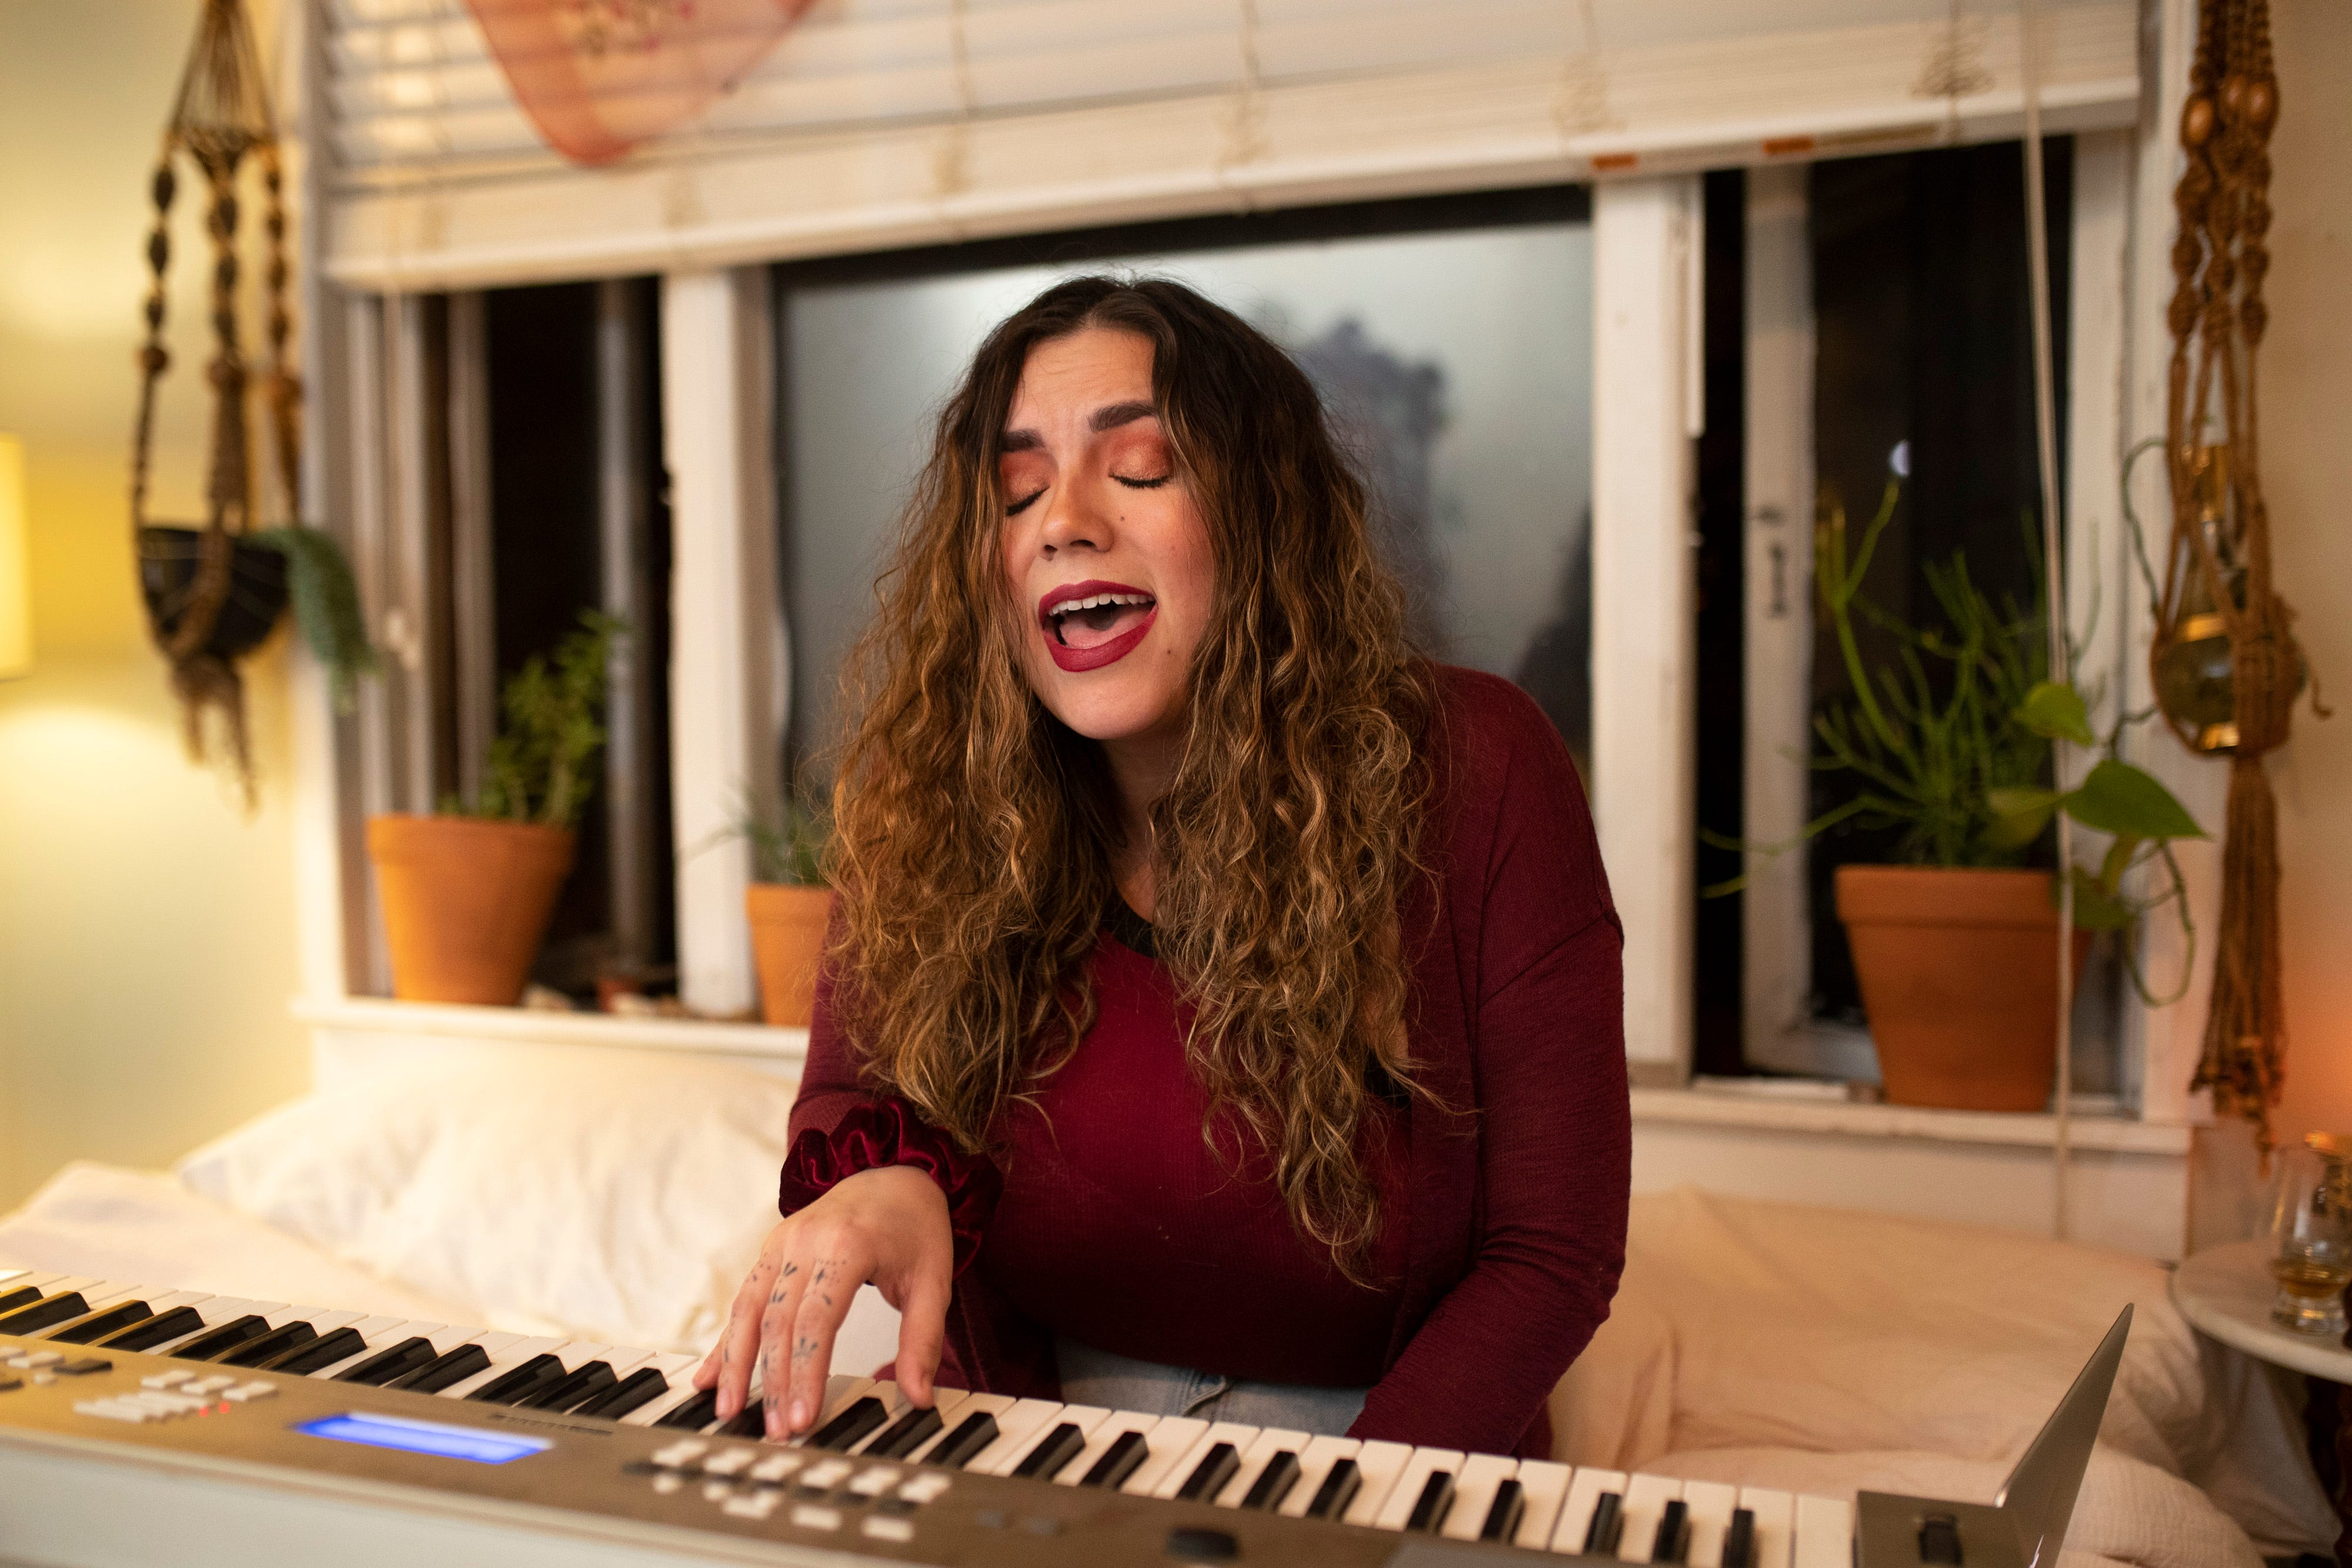 """10:54 PM  Louisville artist and musician Jordan Blase practices her original songs in her bedroom before bandmates came to her apartment for a rehearsal of their upcoming EP PYRO on Jan. 23, 2020. """"I started singing when I was young, I had a bad speech impediment and I could sing better than I could talk,"""" Blase said. """"It was just a way for me to practice my speech alone and not feel weird about how I said anything."""" Today, Blase freely belts out vocals in front of live audiences and is excited to share songs that she's had in the works for some time. """"Music is just a need now, like something I have to expel."""""""